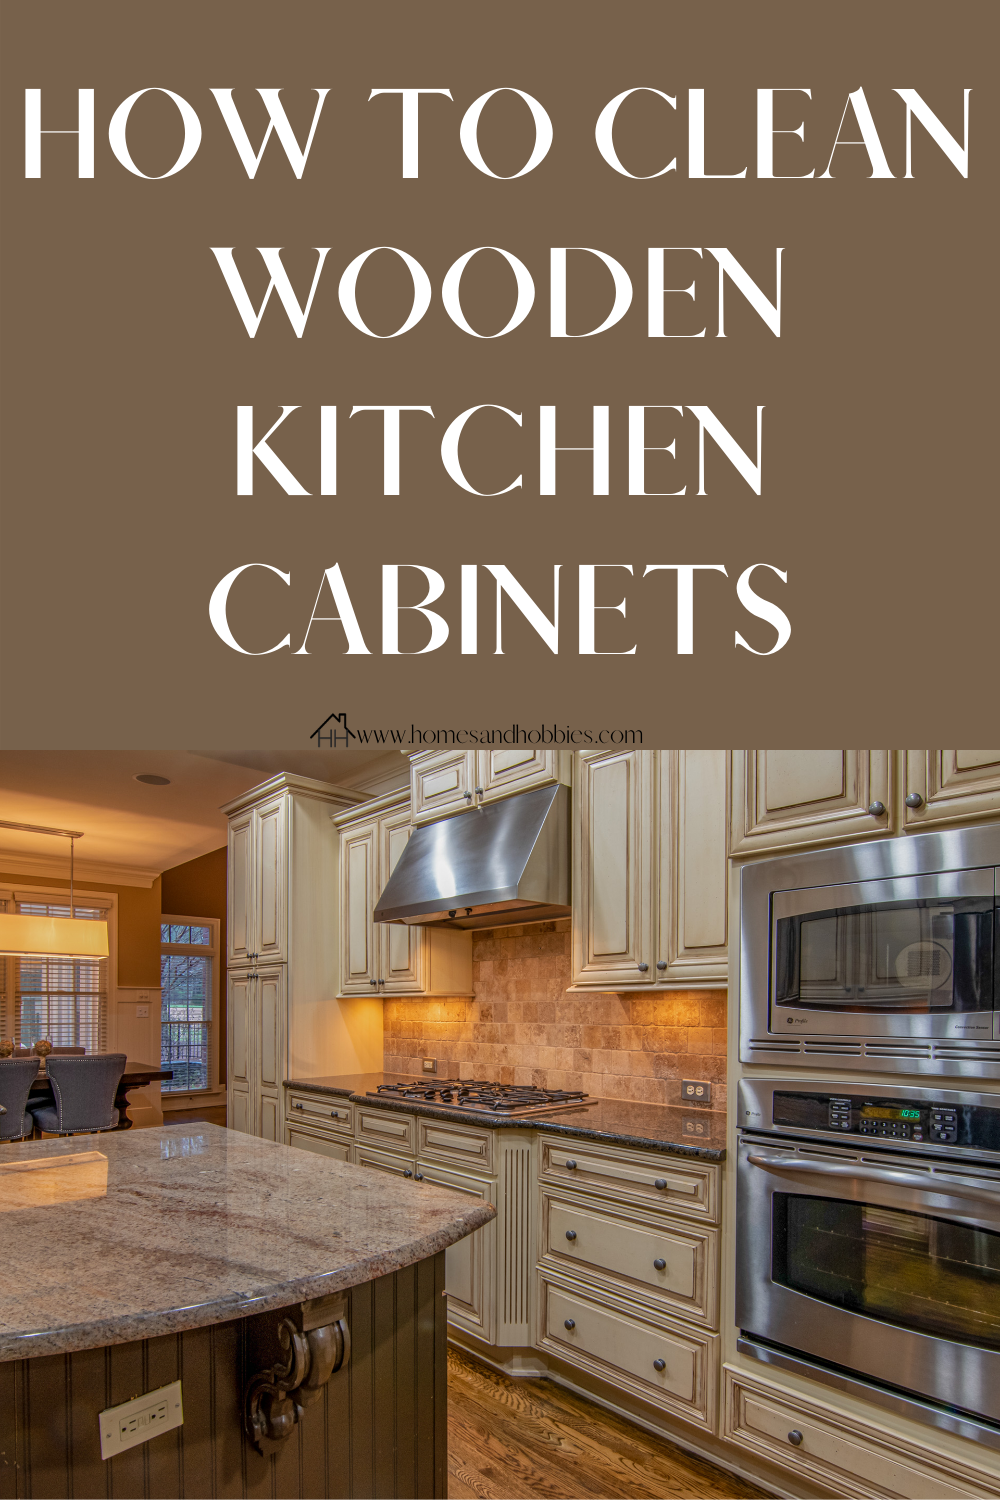 How To Clean Greasy Kitchen Cabinets Homes And Hobbies In 2020 Kitchen Cabinets Wooden Kitchen Cabinets Wooden Kitchen